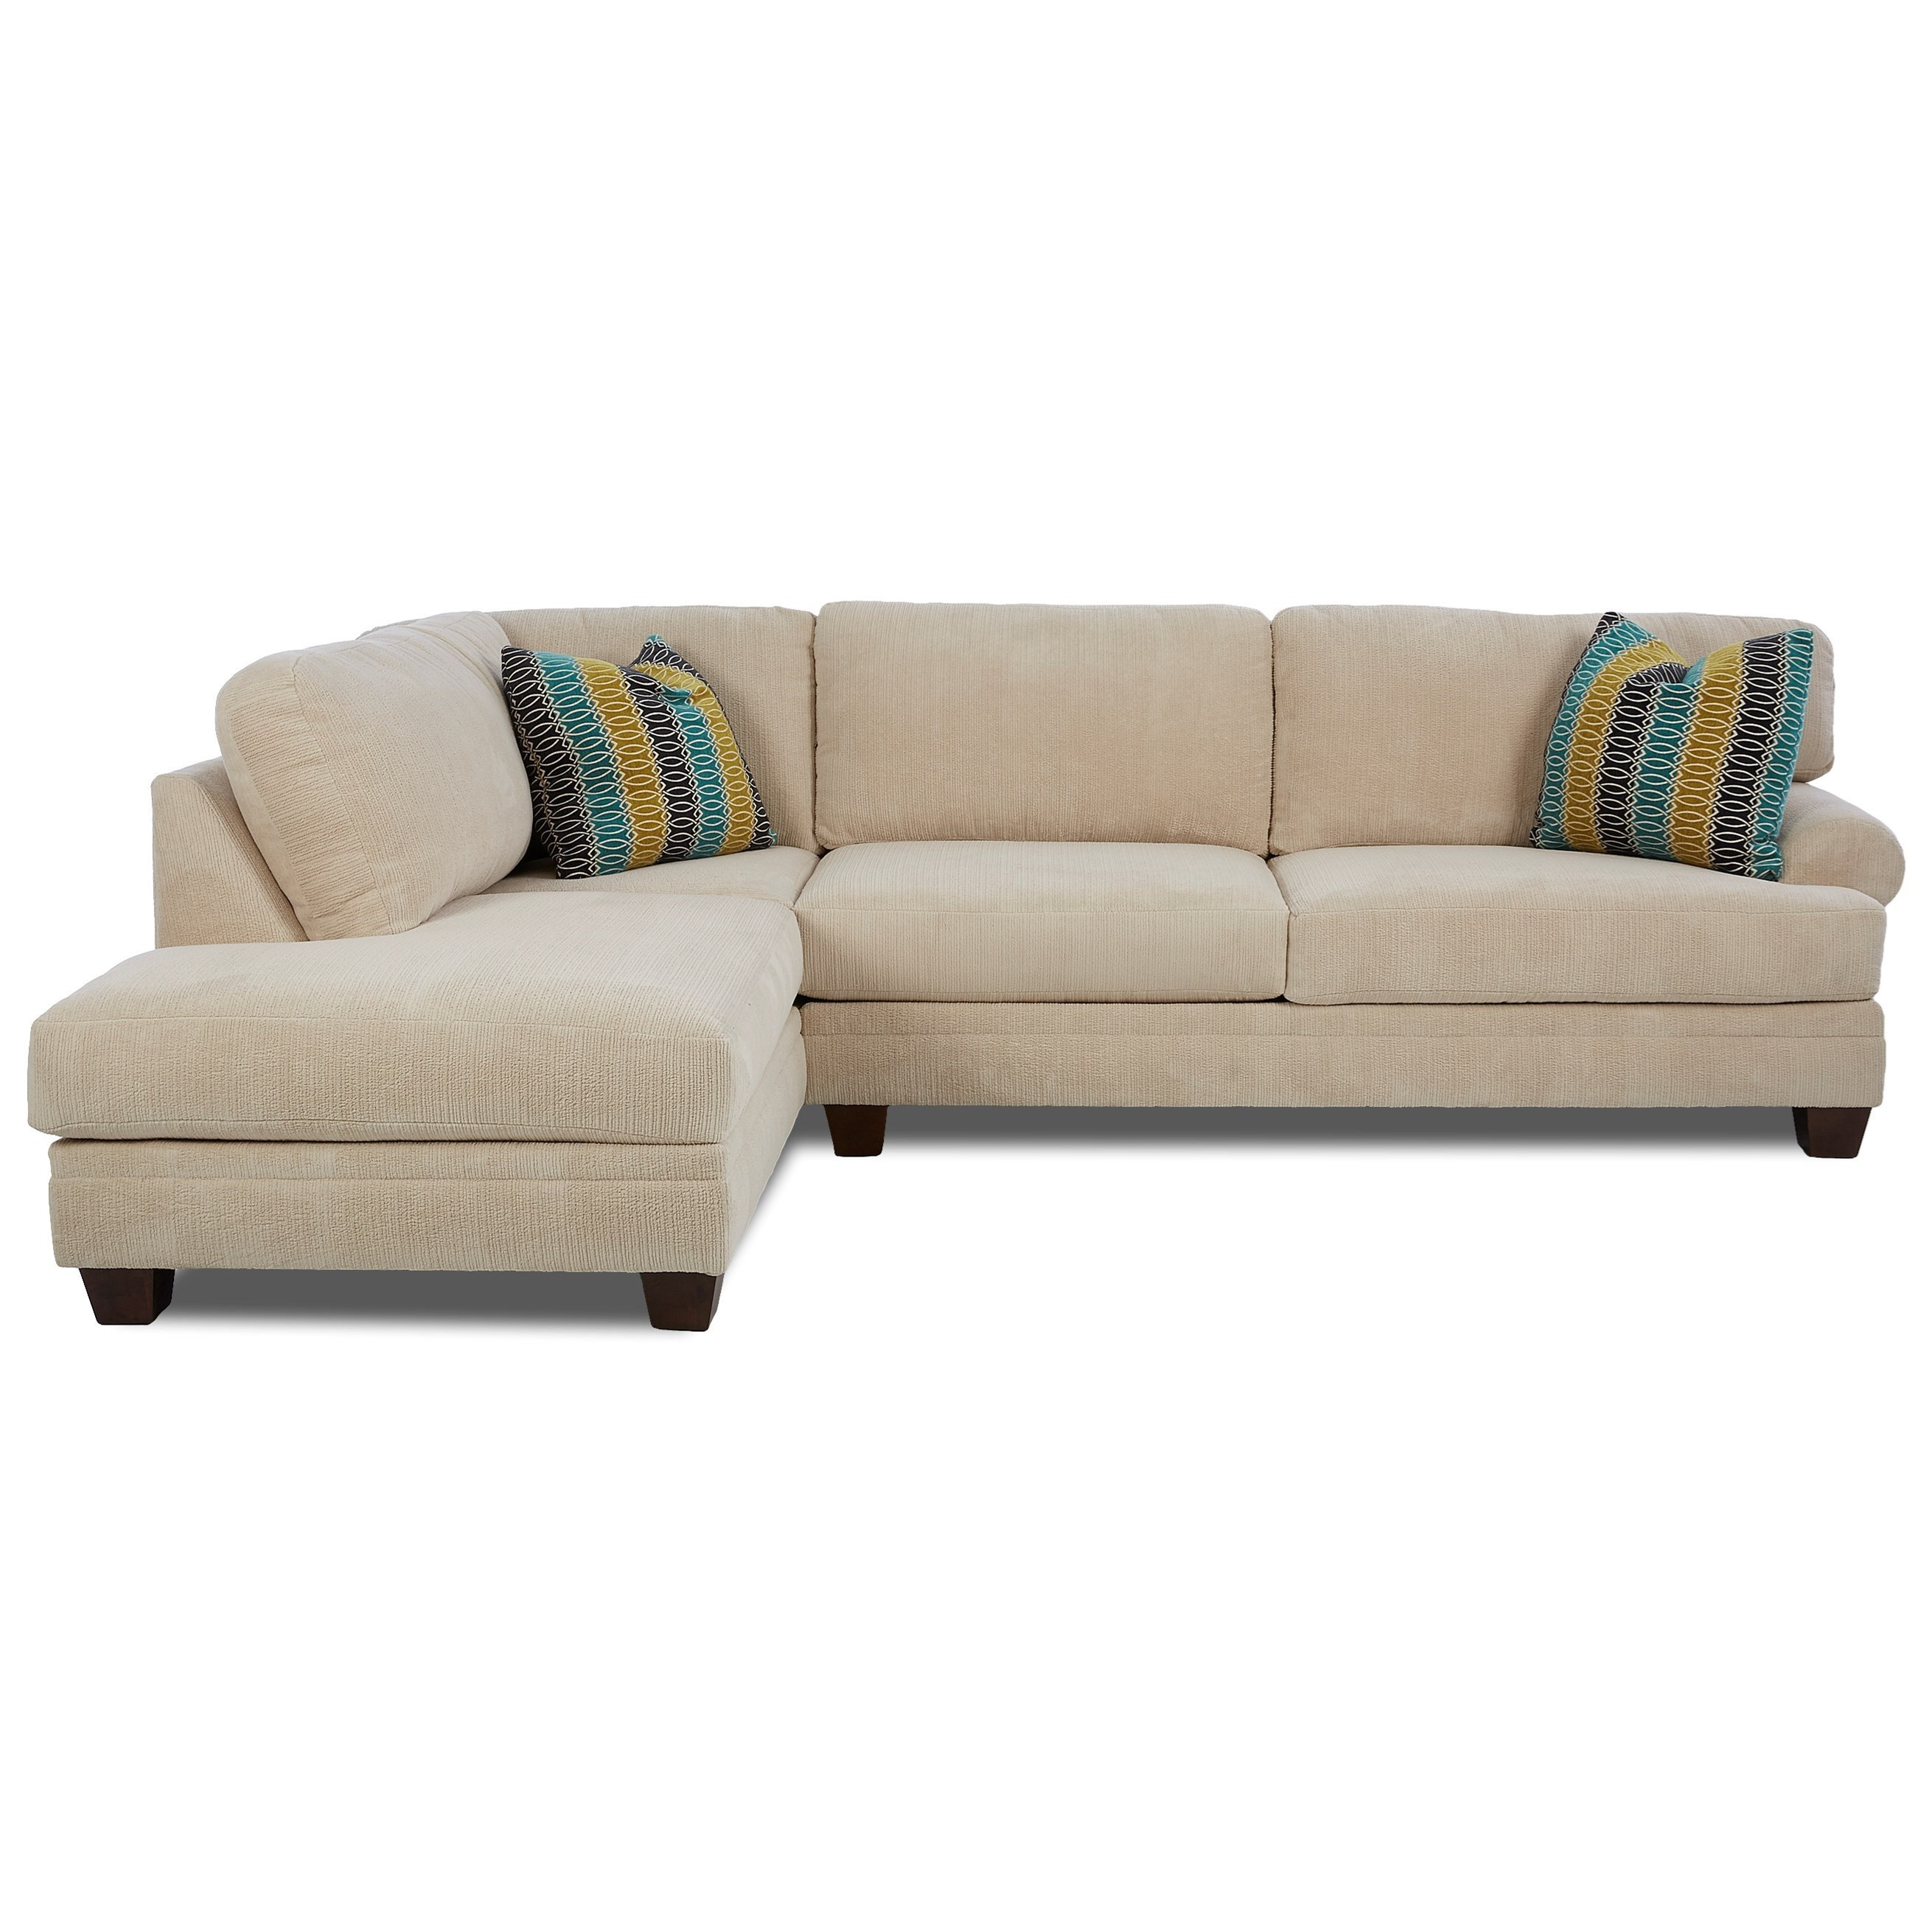 Klaussner Tinley Two Piece Sectional Sofa With LAF Sofa Chaise